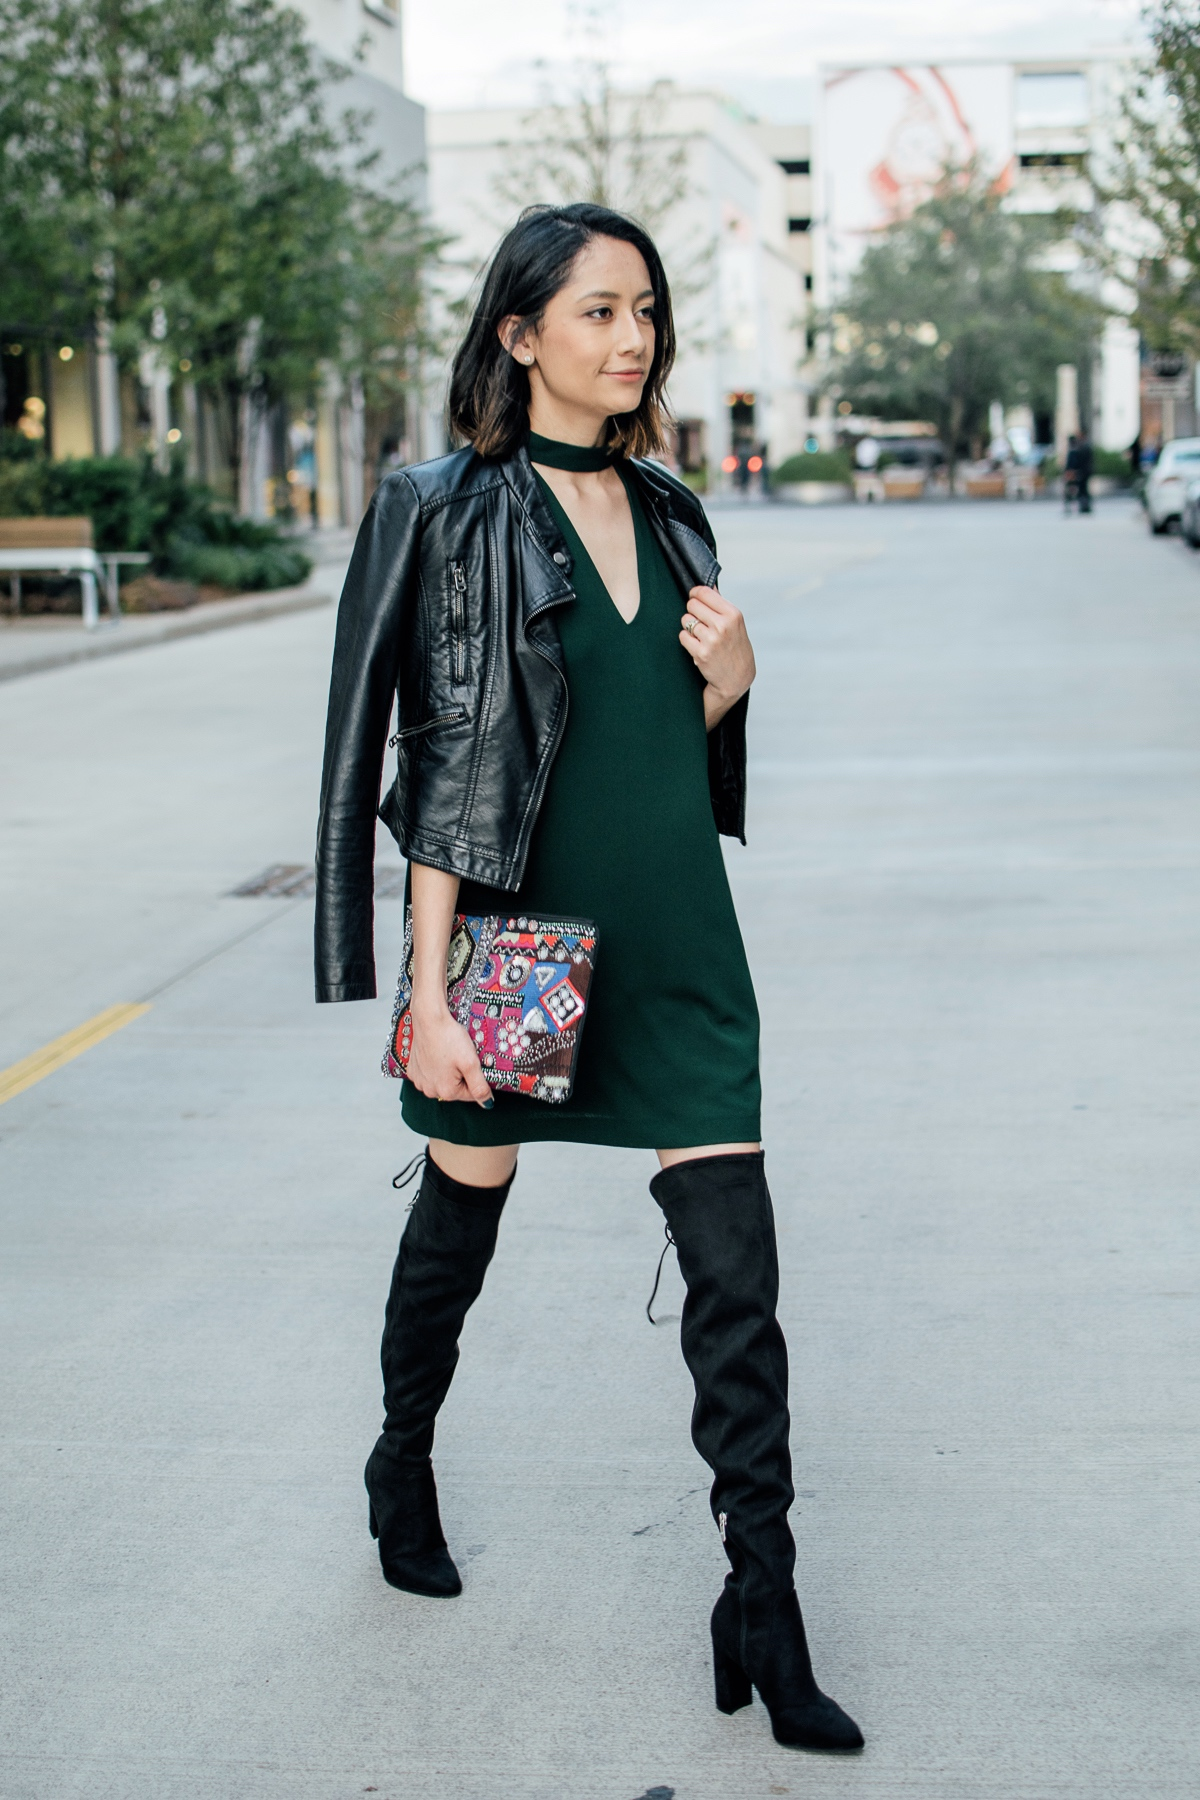 Affordable over-the-knee boots